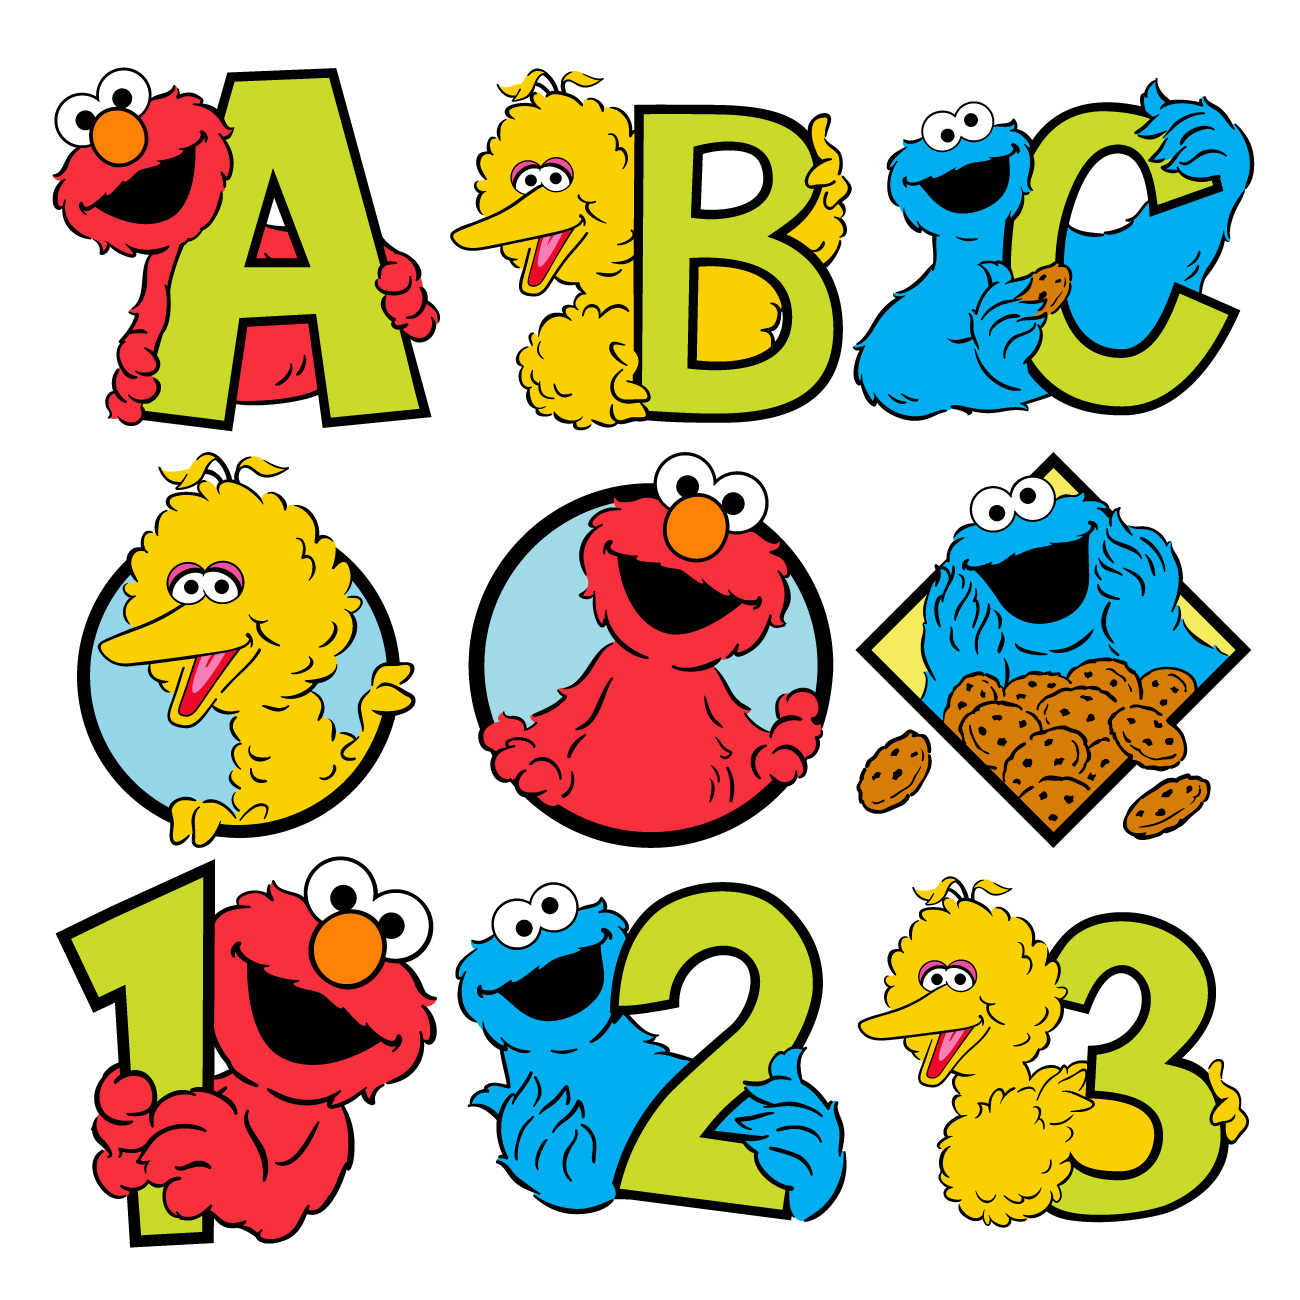 Sesame stree clipart picture black and white stock Sesame Street Clipart | Free download best Sesame Street ... picture black and white stock